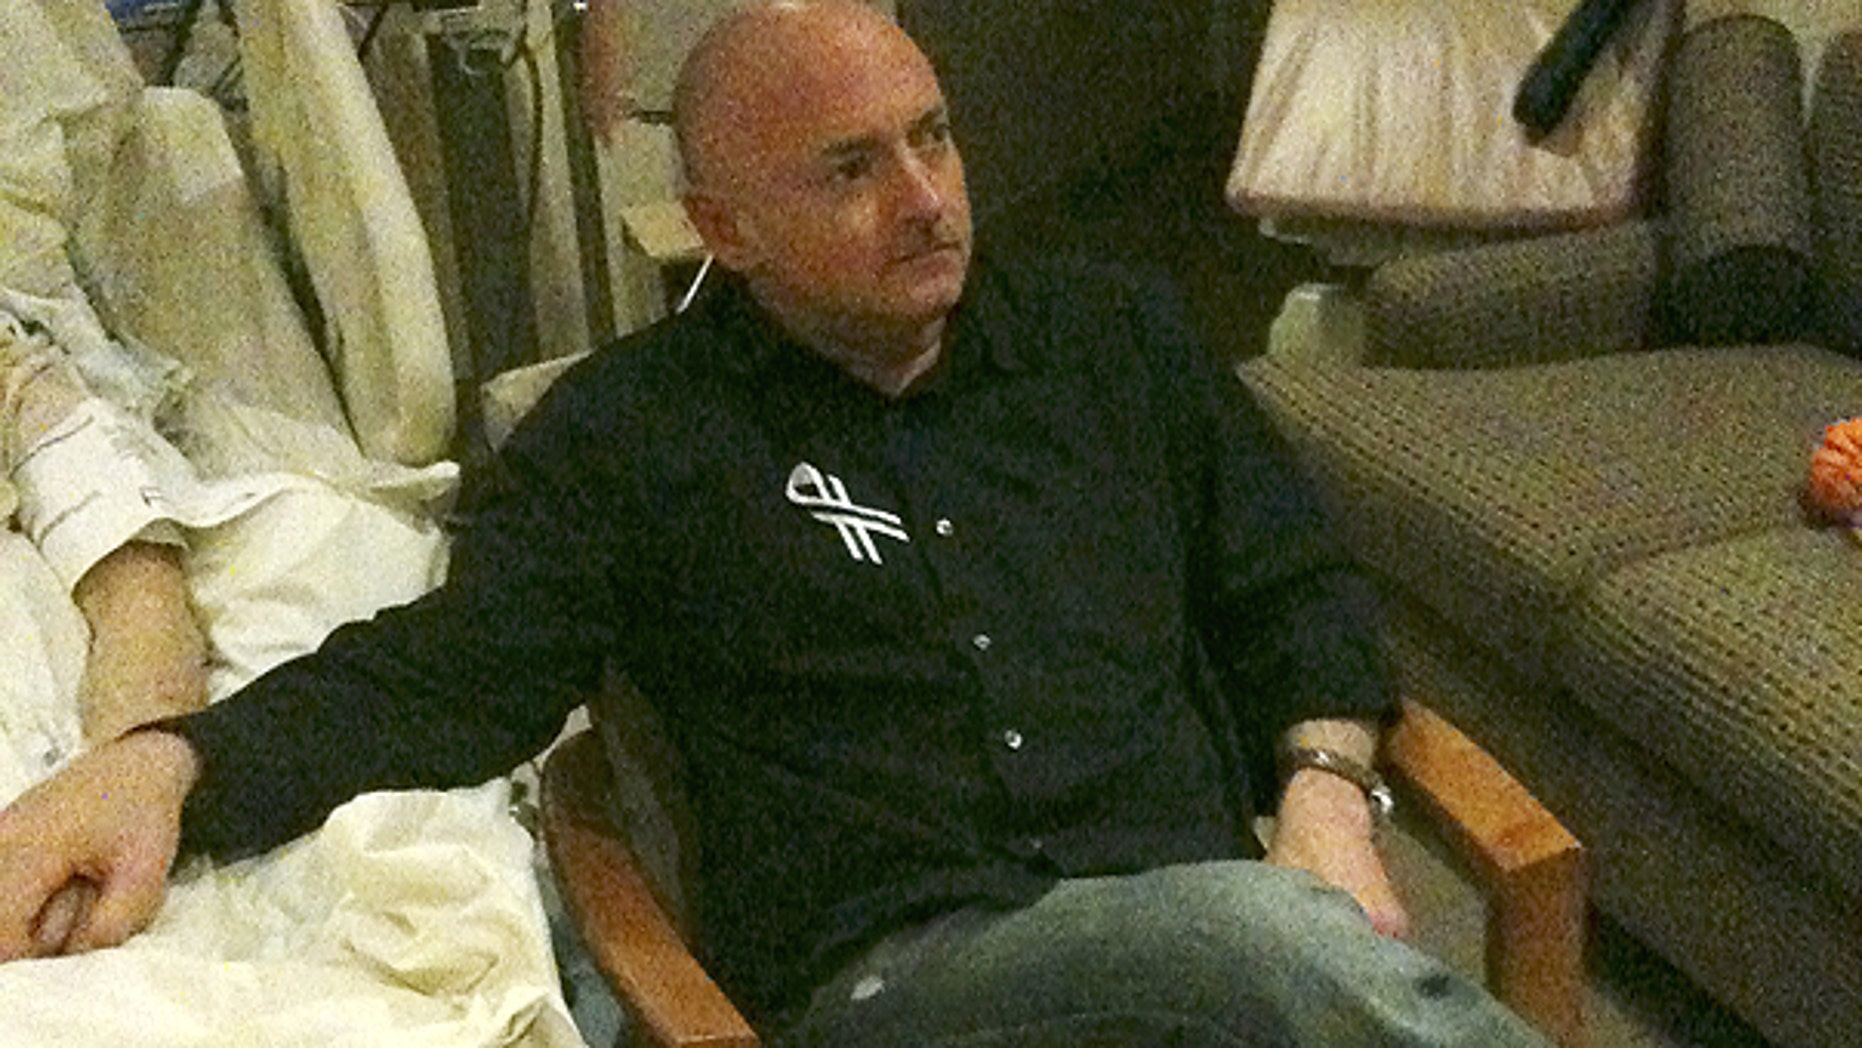 Jan. 25: A photo released by the office of U.S. Rep. Gabrielle Giffords shows Rep. Giffords husband Mark Kelly watching the State of The Union speech while holding his wife's hand in her hospital room in Houston.